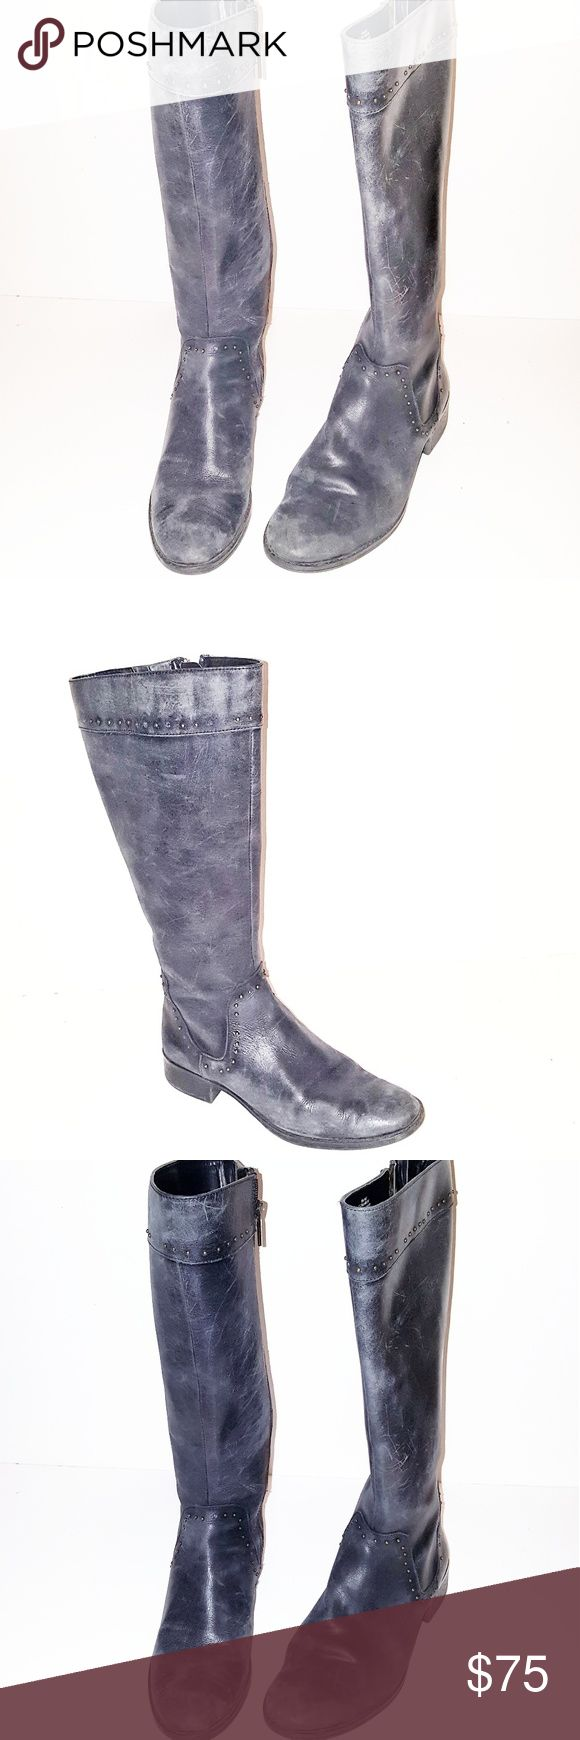 "Vintage Distressed Joan & David Boots Vintage distressed black Joan & David boots. 12"" shaft. 1"" heel. Dark charcoal gray.  Size: 8M US Condition: Distressed Vintage Condition Joan & David Shoes Winter & Rain Boots"